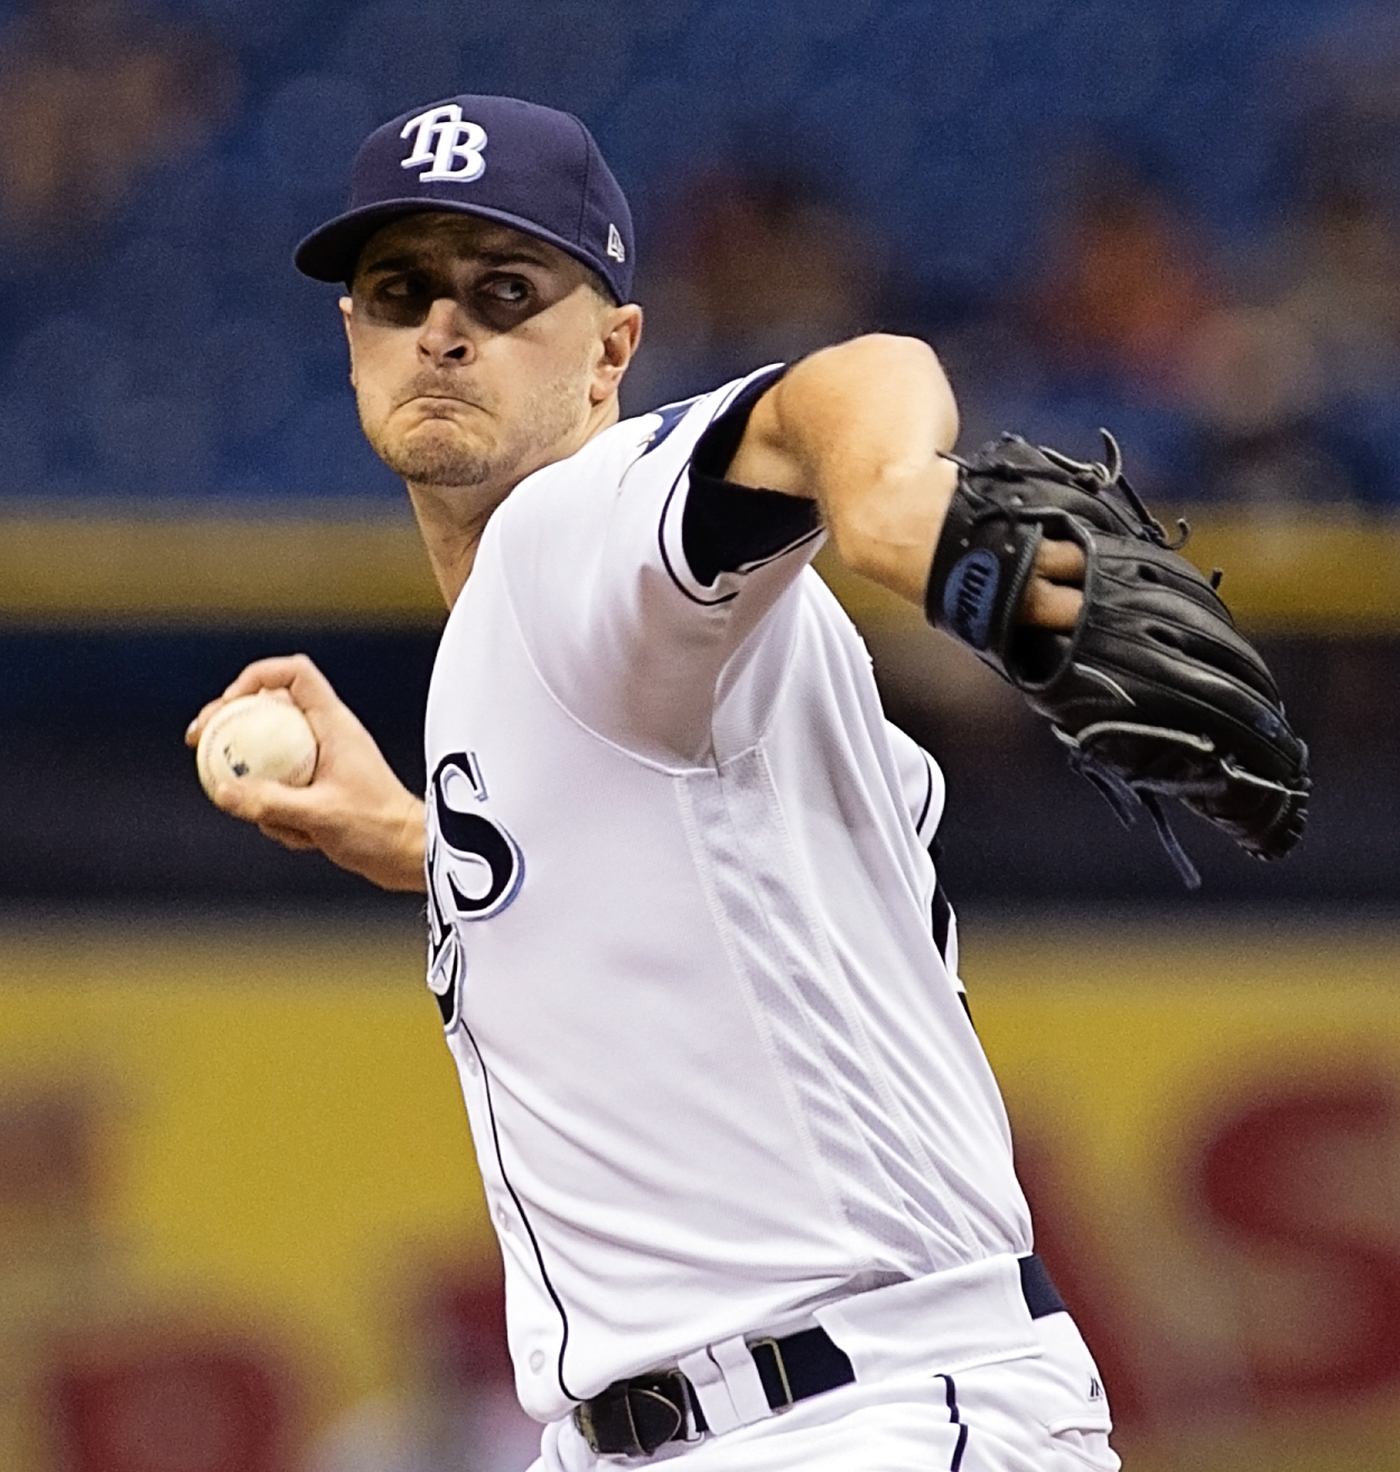 Odorizzi allowed only one hit in  an excellent outing./CARMEN MANDATO